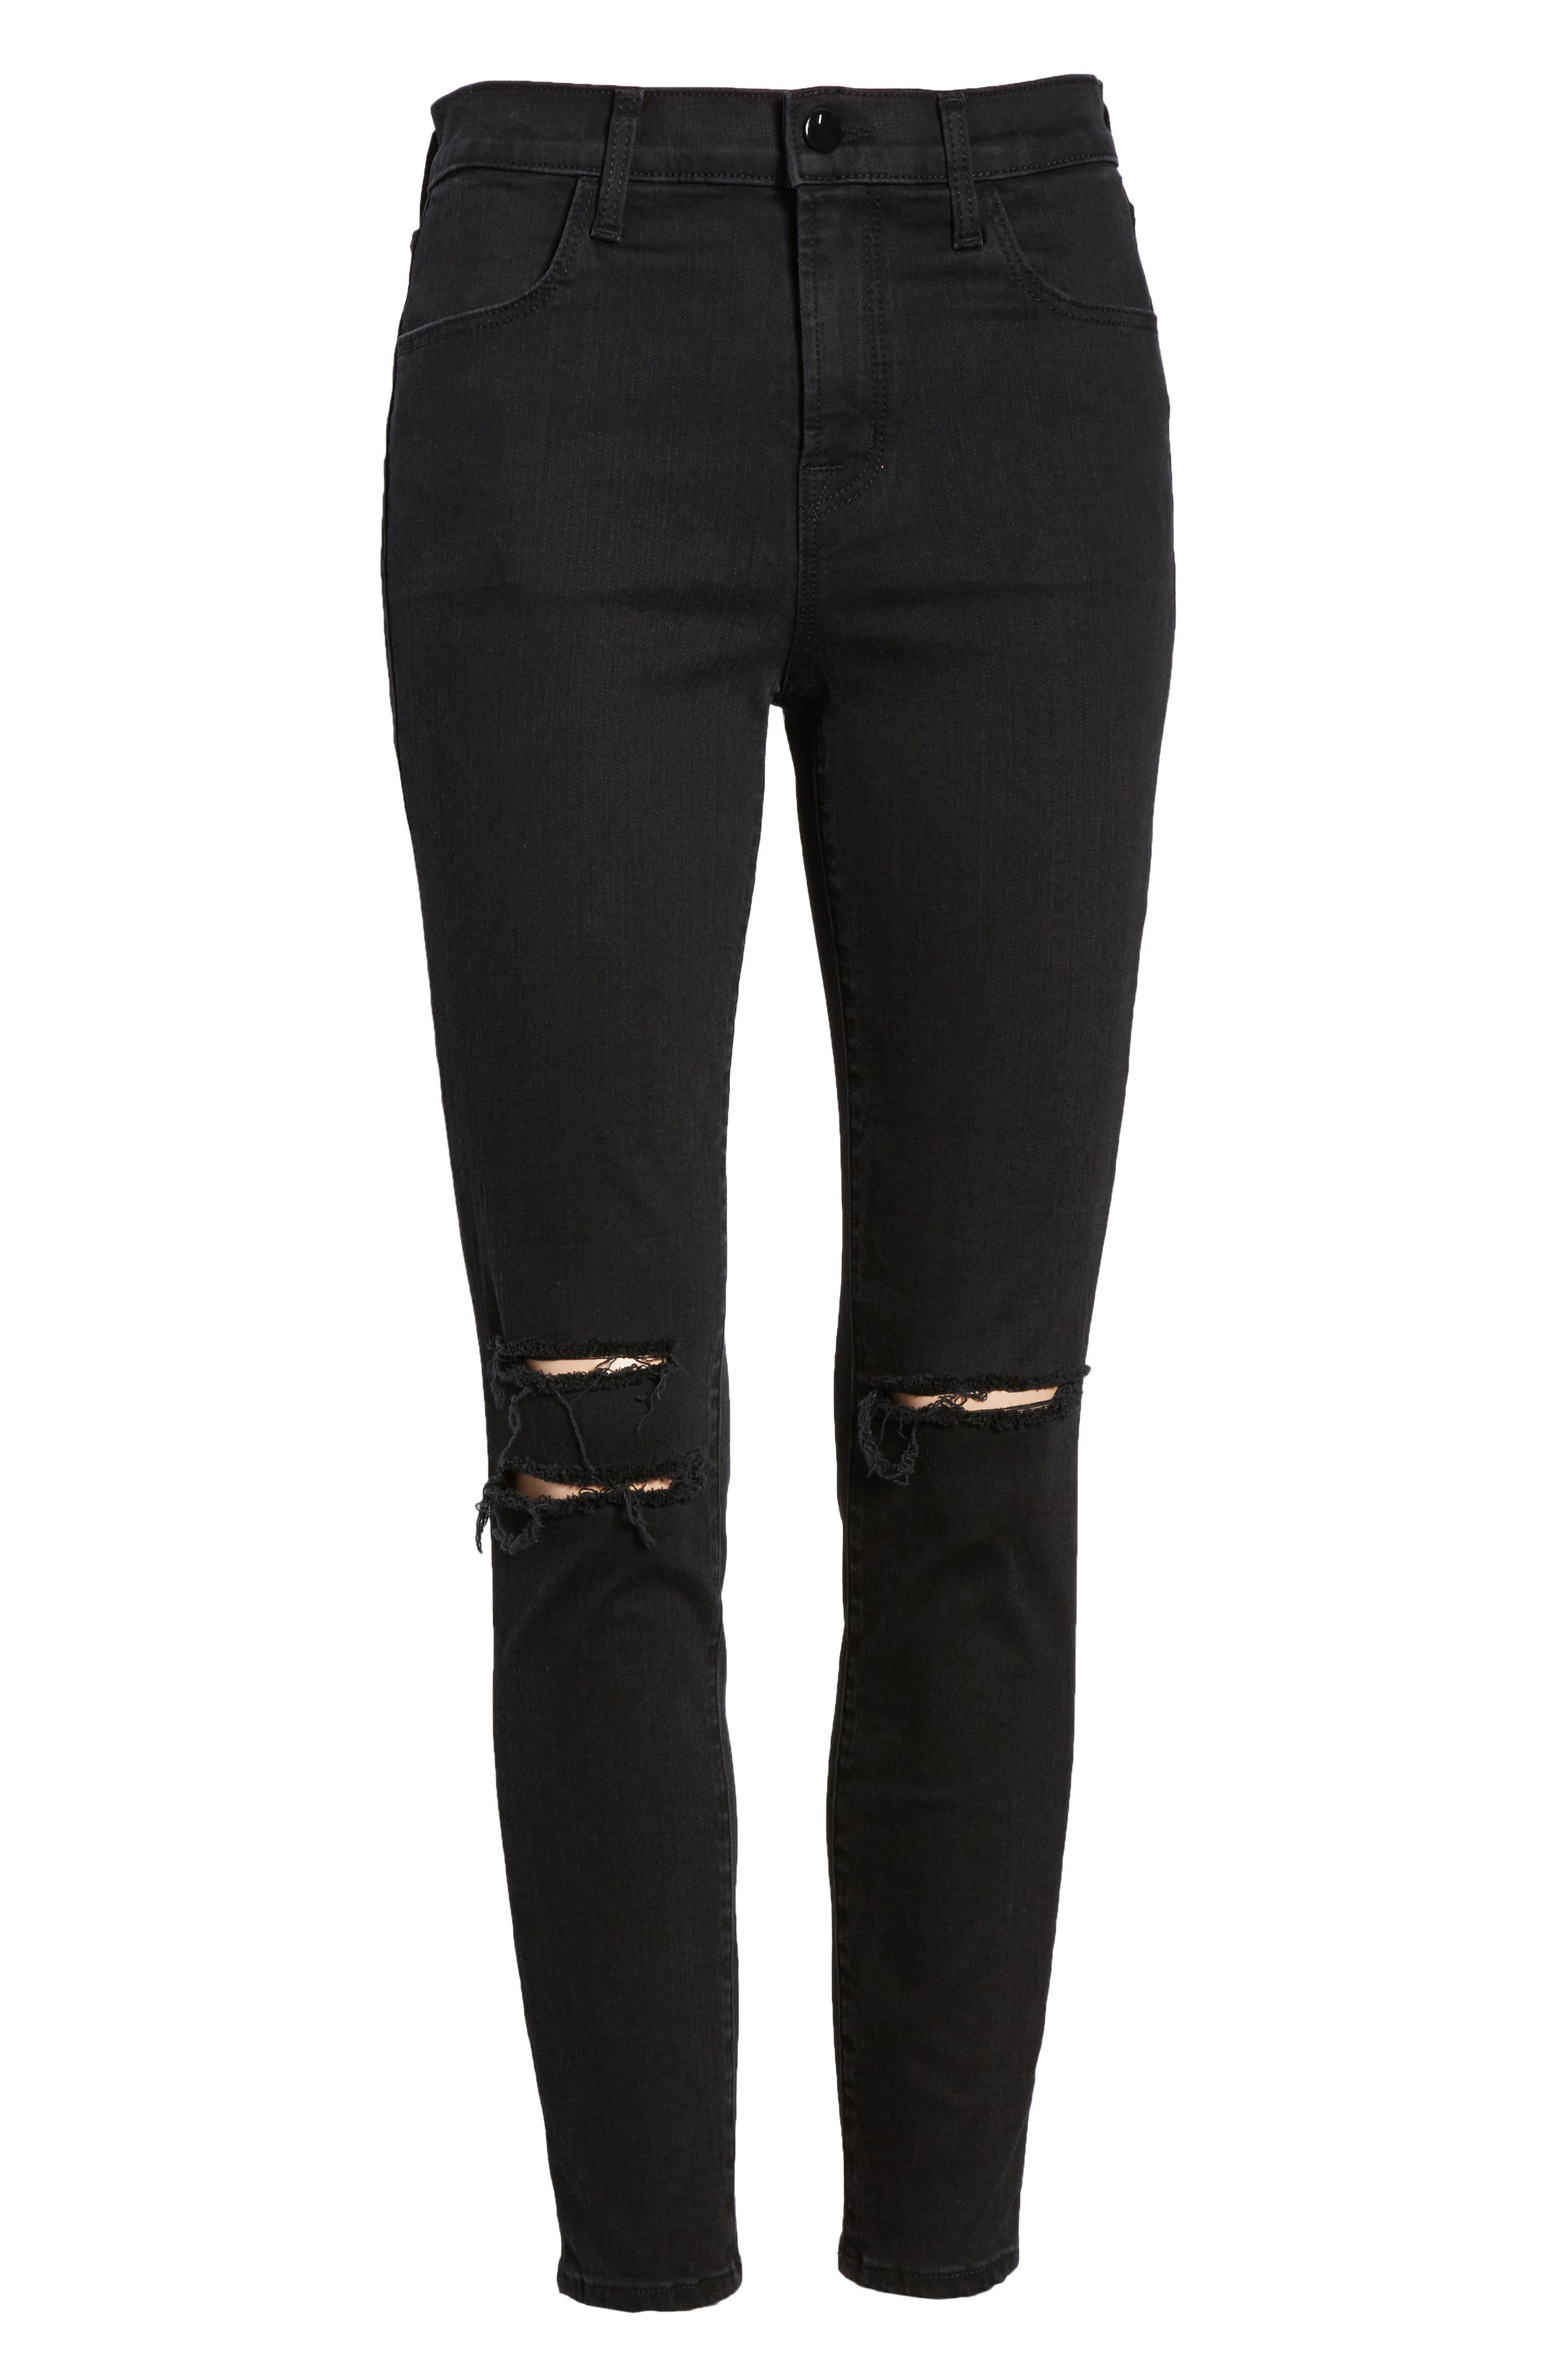 Alternate Image 6  - J Brand Alana High Waist Ankle Skinny Jeans (Black Mercy) (Nordstrom Exclusive)